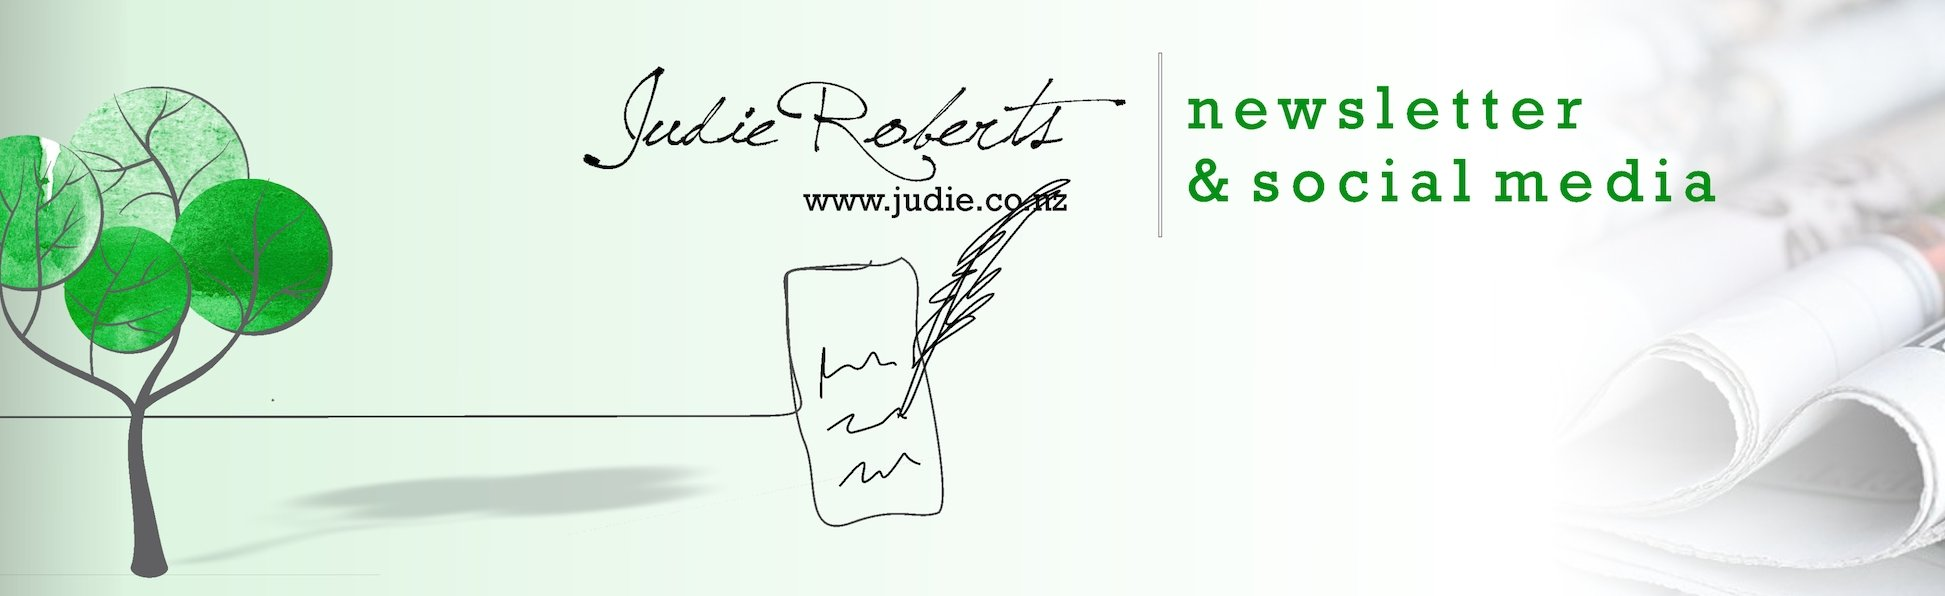 Newsletter & Social Media with Judie Roberts